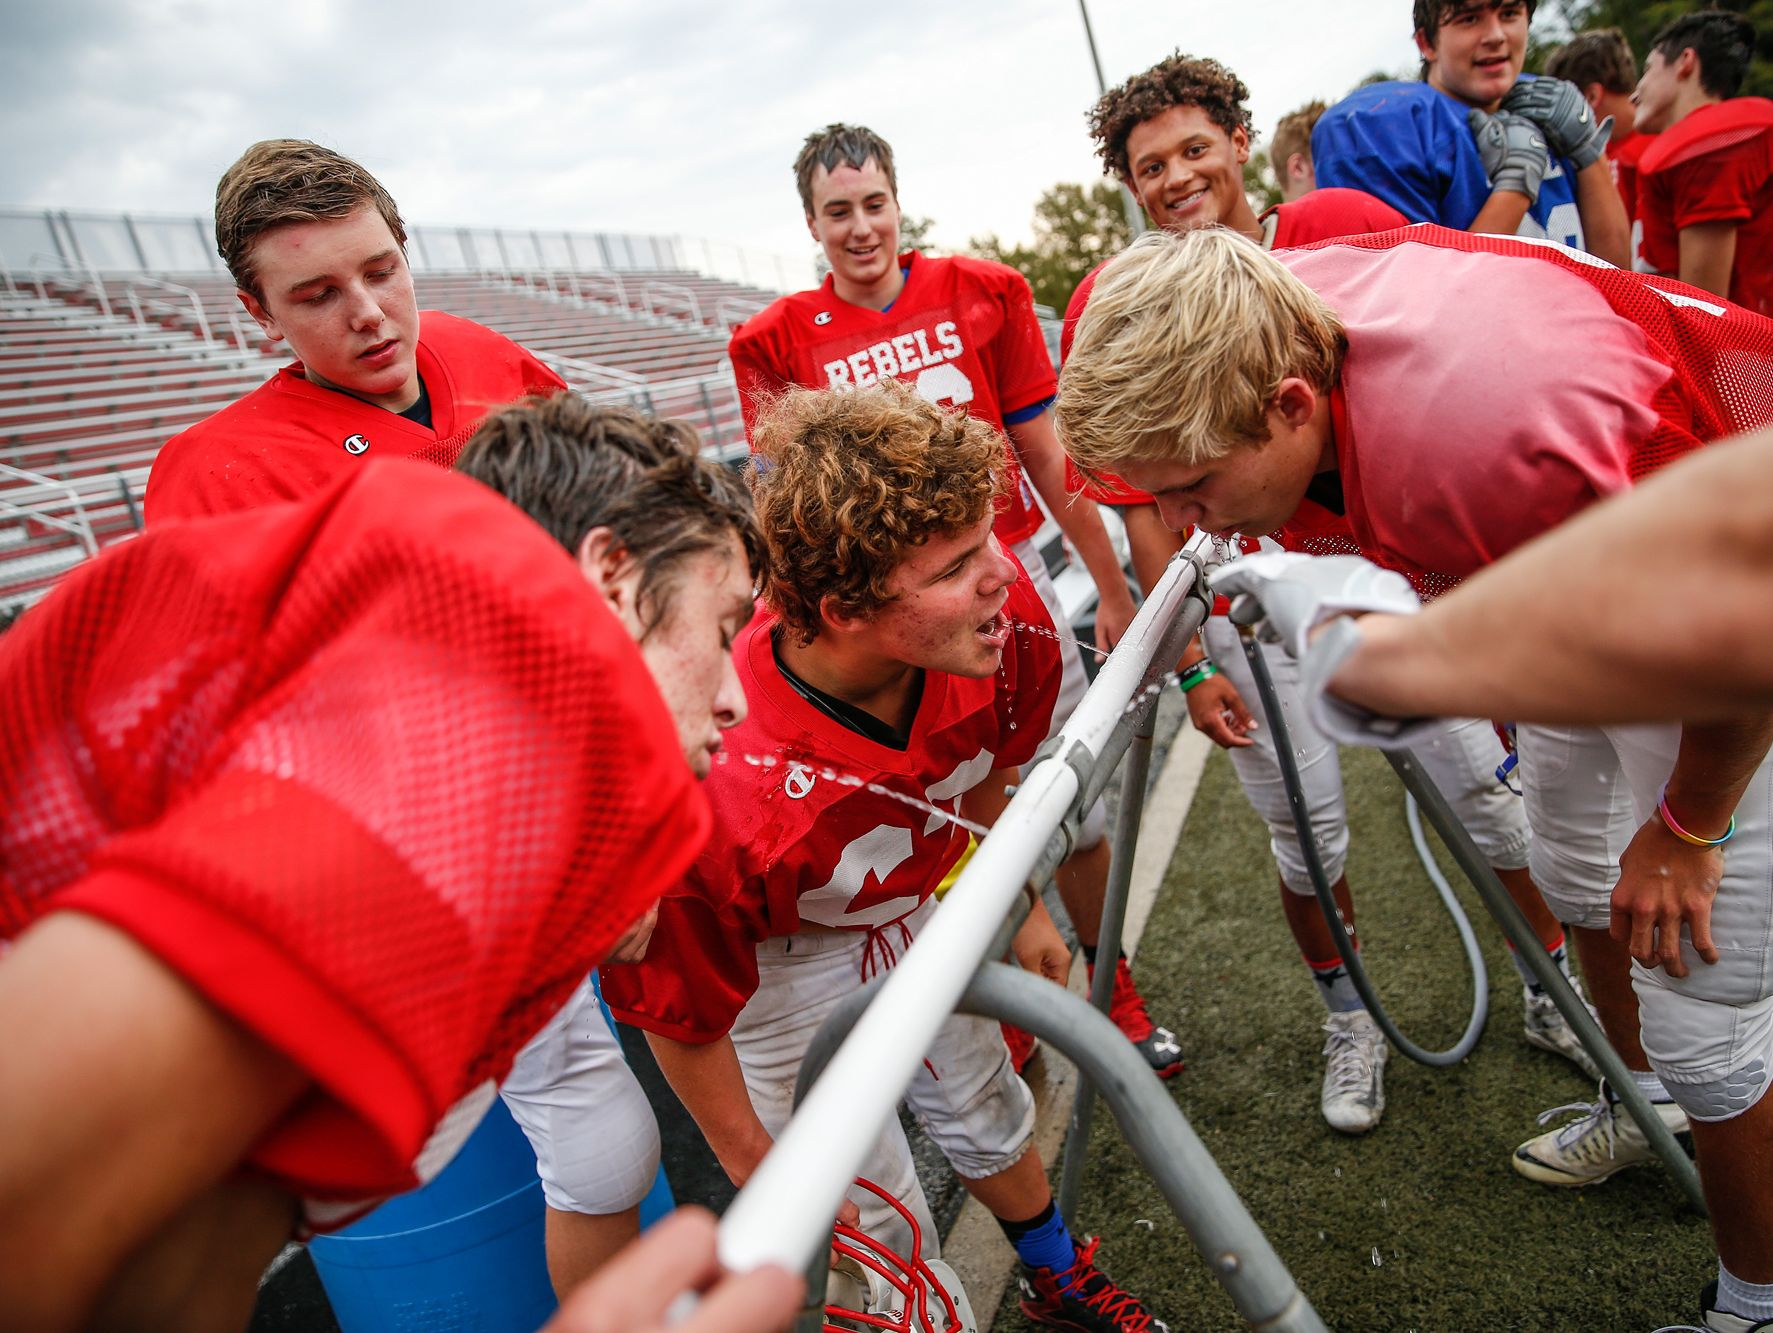 Roncalli Rebels nose tackle Max Quebe, middle, a 5-foot-2-inch, 135-pound Russian adoptee, gets a drink alongside other teammates after a drill during practice on Oct. 19, 2016.